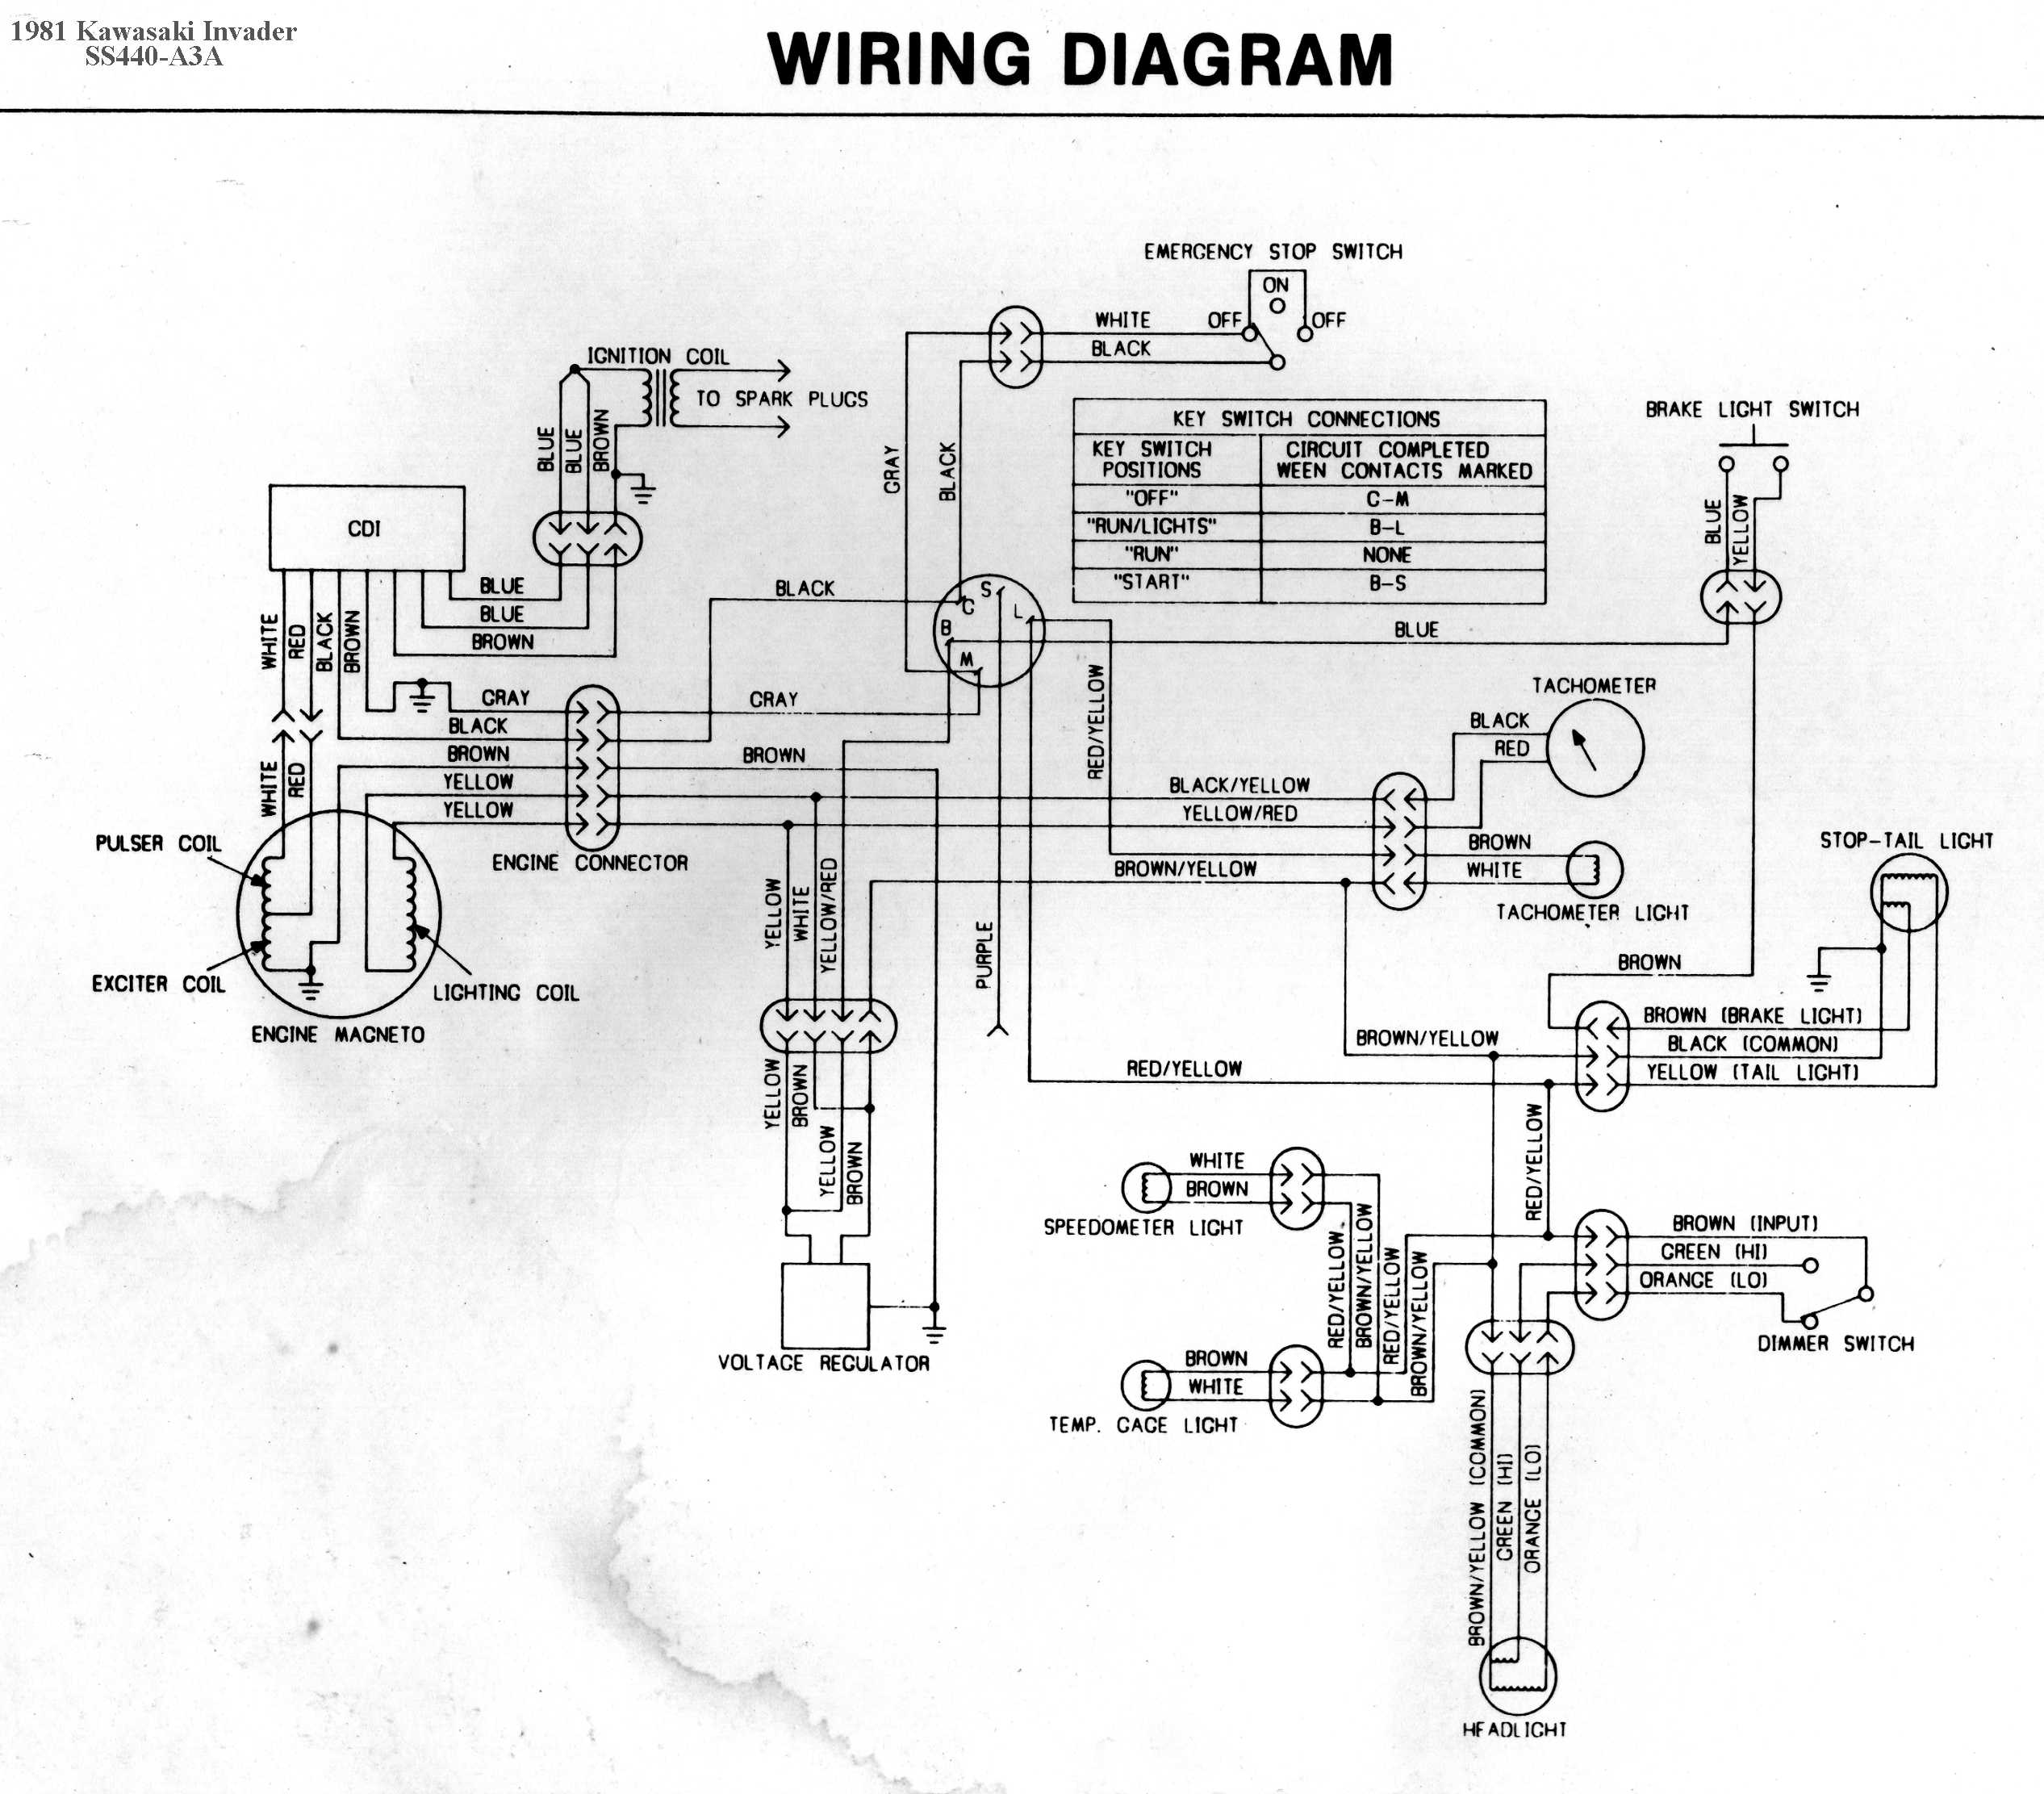 Yamaha Snowmobile Engine Diagrams - wiring diagram switches-project -  switches-project.ristorantegorgodelpo.it | 1997 Yamaha Snowmobile Wiring Diagram |  | Ristorante Gorgo del Po